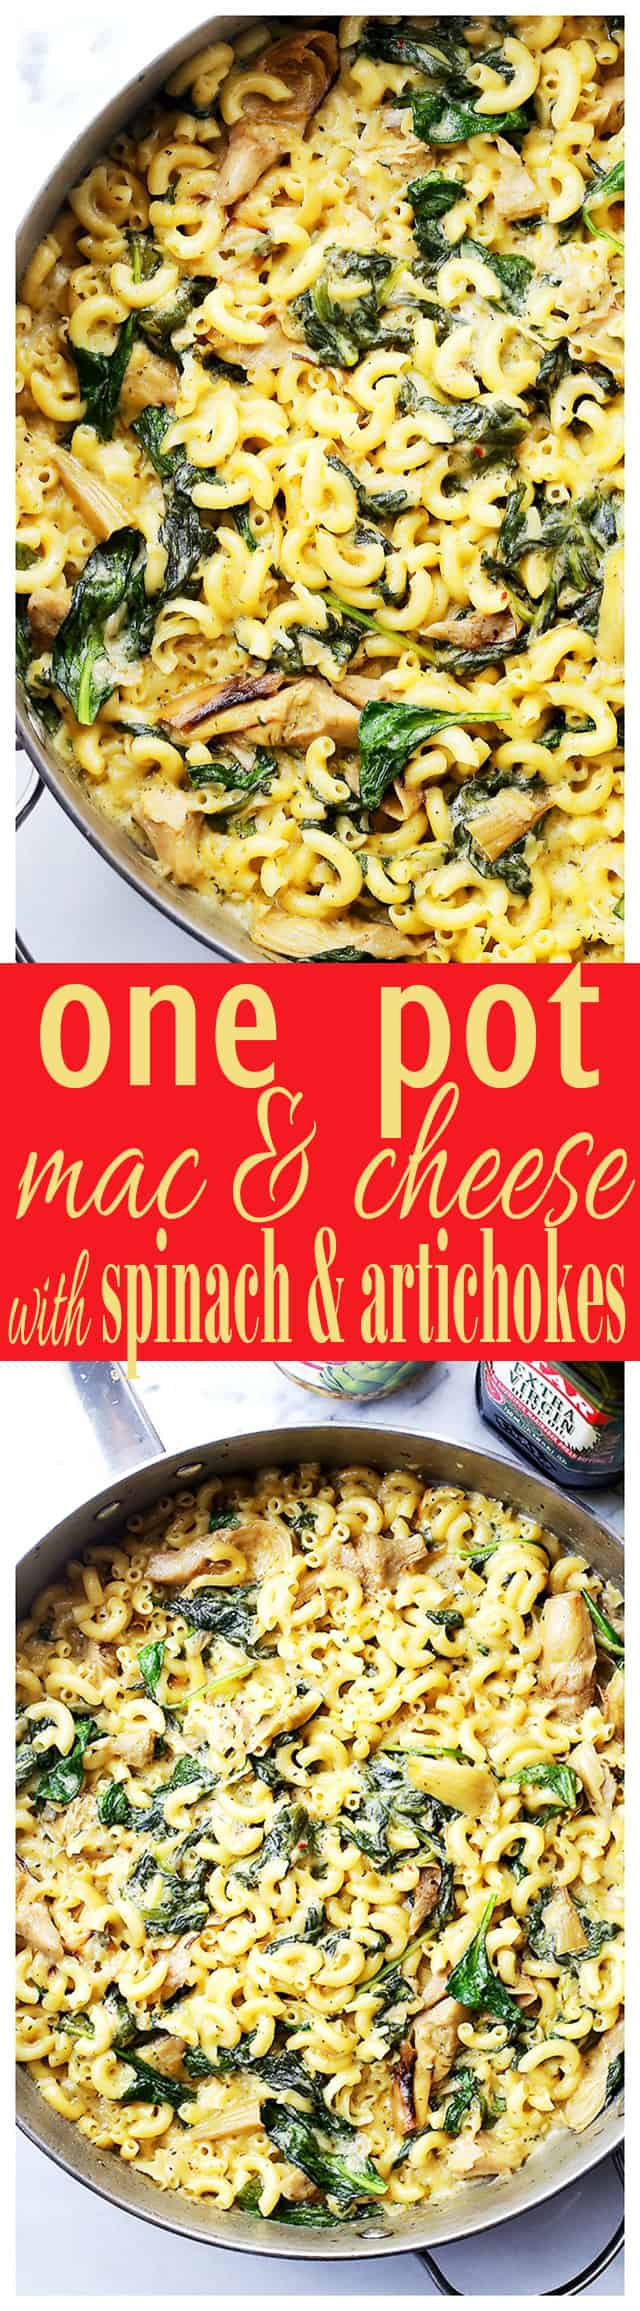 One Pot Spinach & Artichokes Macaroni and Cheese - Stove top one-pot Mac 'n Cheese packed with spinach and artichokes, and a creamy cheese sauce. Dinner will be ready in under 30 minutes!